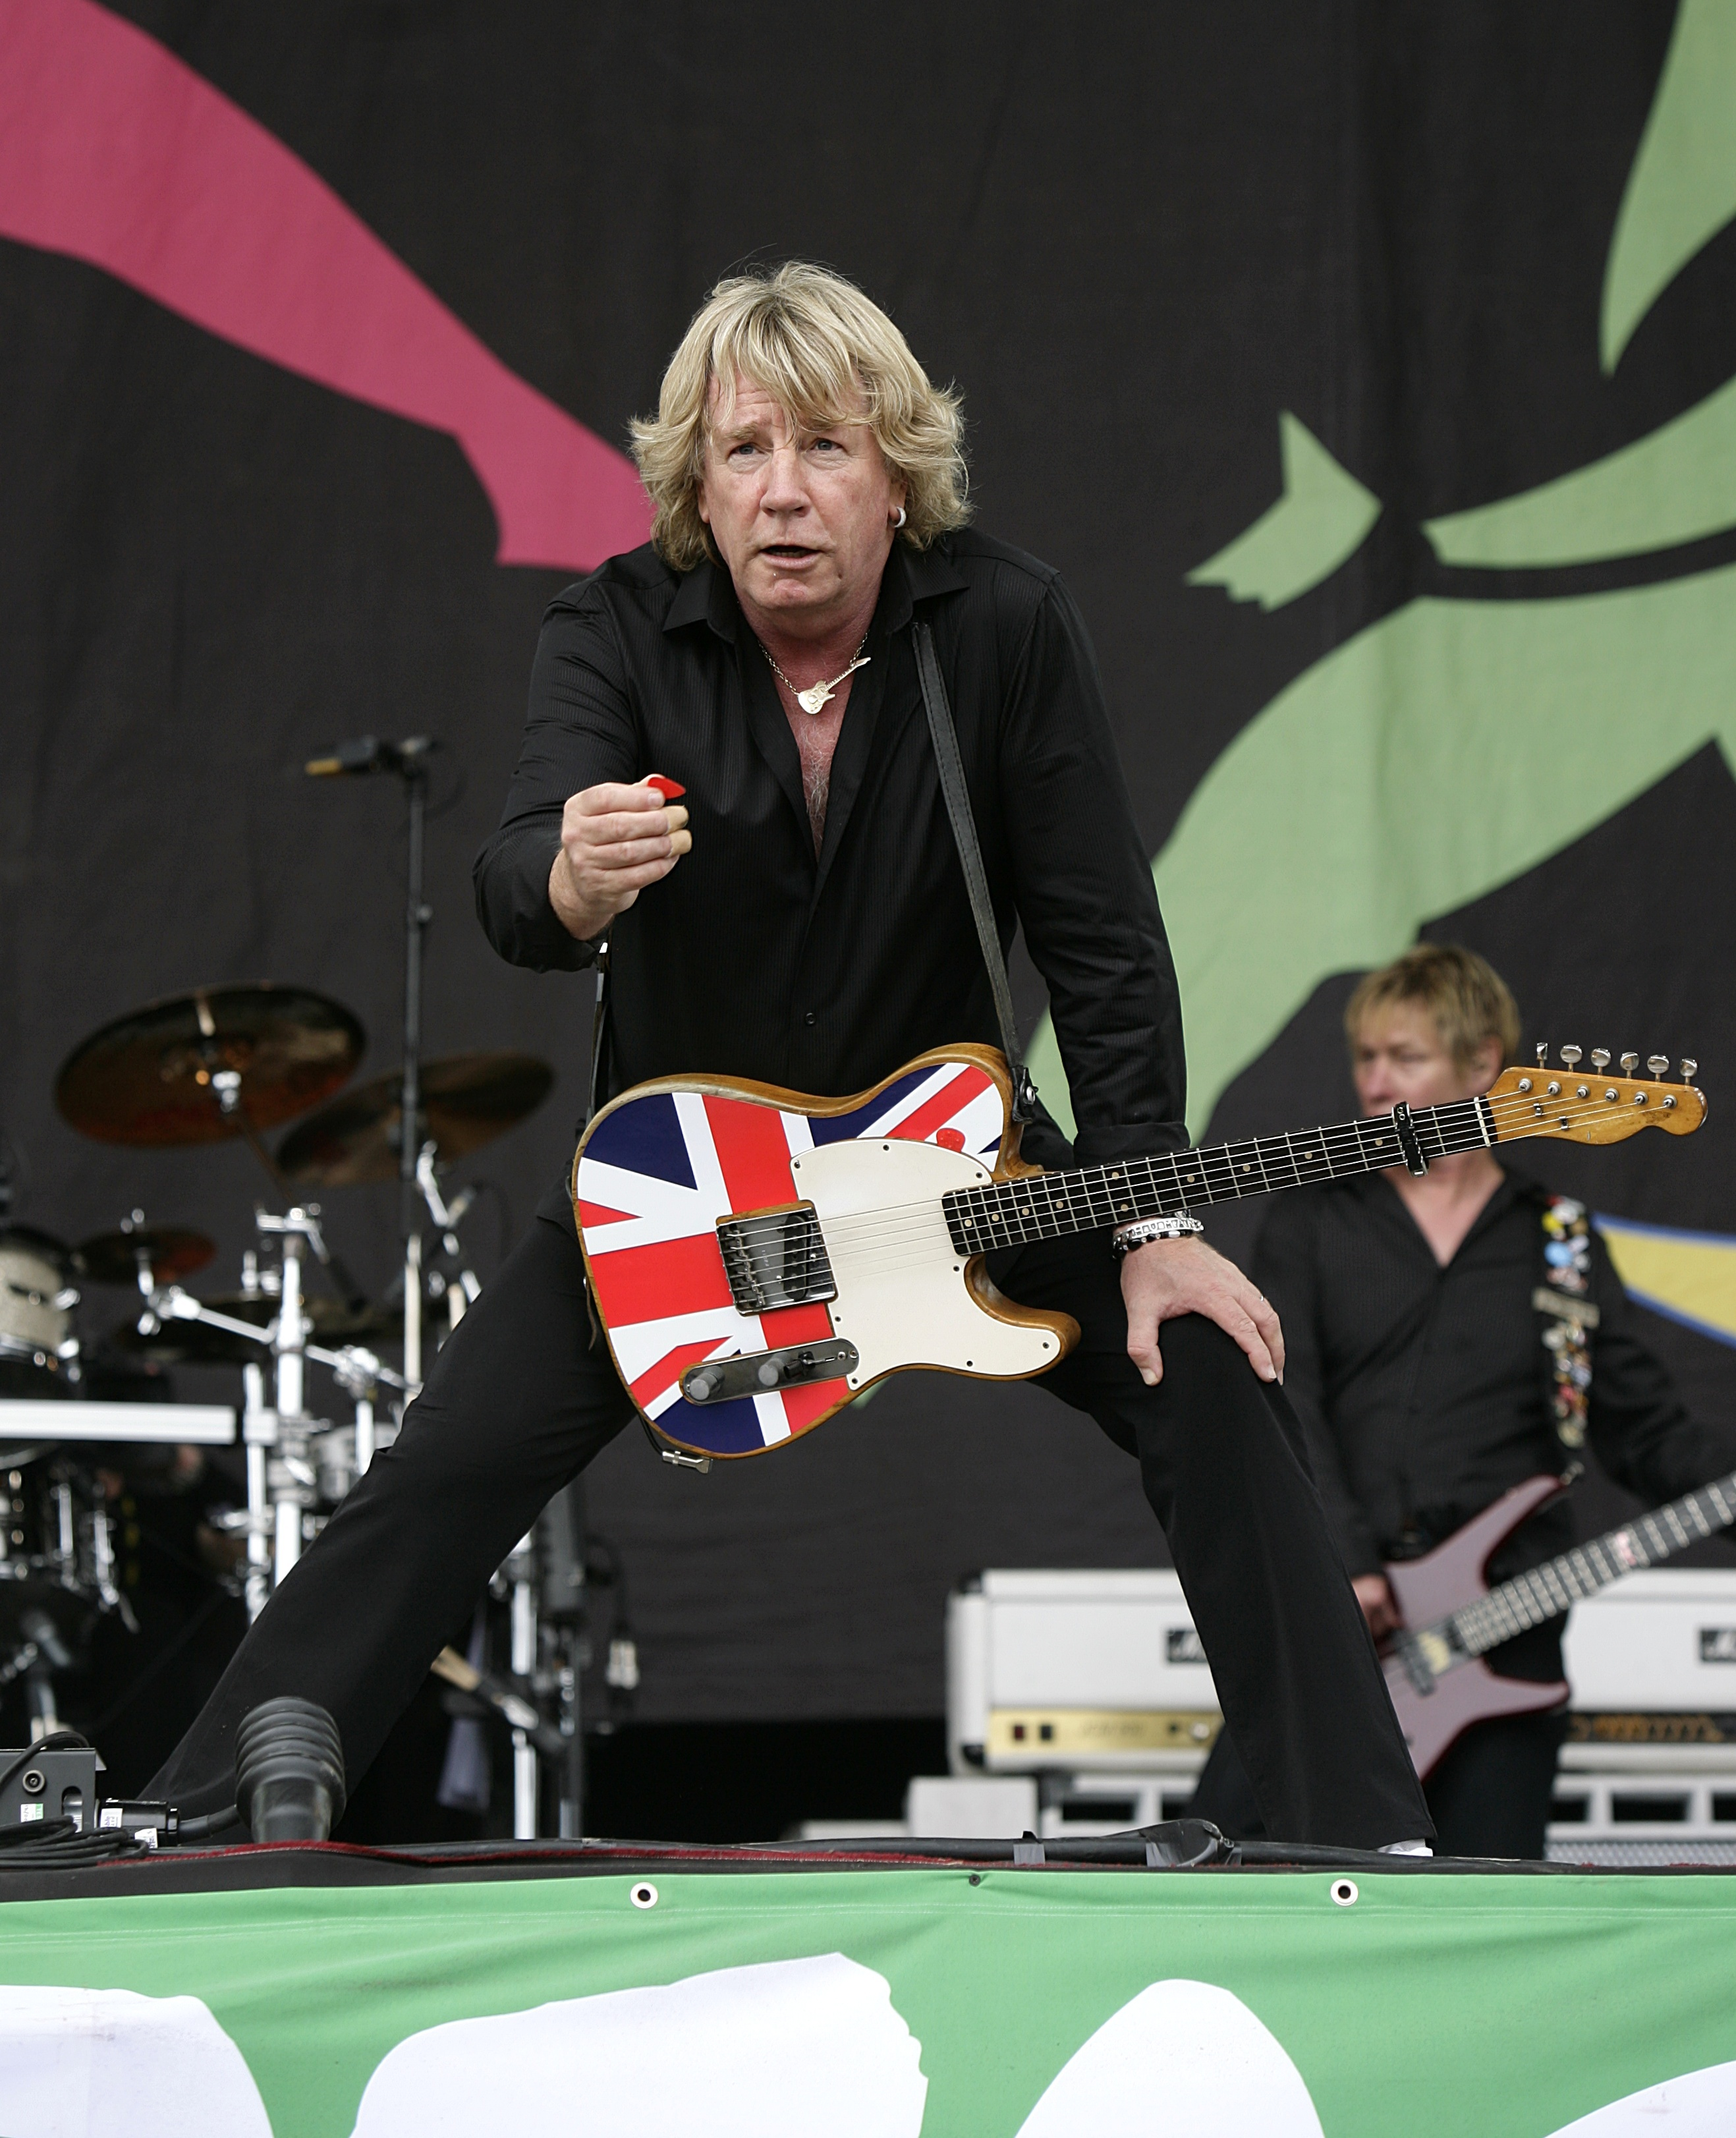 File photo datred 28/06/09 of Rick Parfitt of Status Quo performing during the 2009 Glastonbury Festival at Worthy Farm in Pilton, Somerset as he has died in hospital in Spain, his manager has said. PRESS ASSOCIATION Photo. Issue date: Saturday December 24, 2016. See PA story DEATH Parfitt. Photo credit should read: Yui Mok/PA Wire